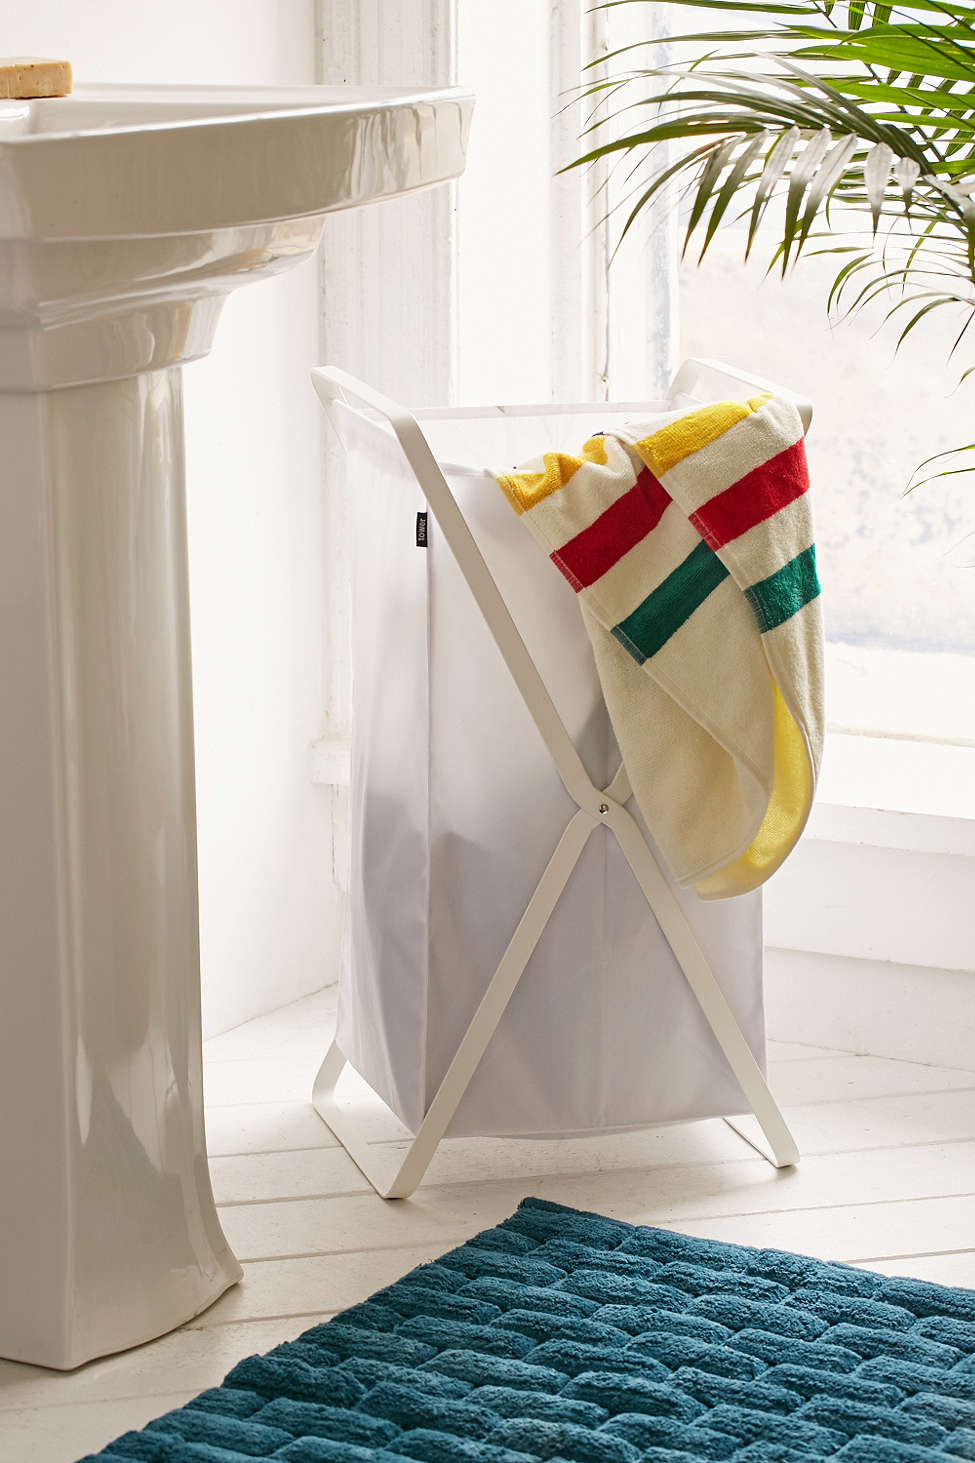 Classic laundry basket from Urban Outfitters